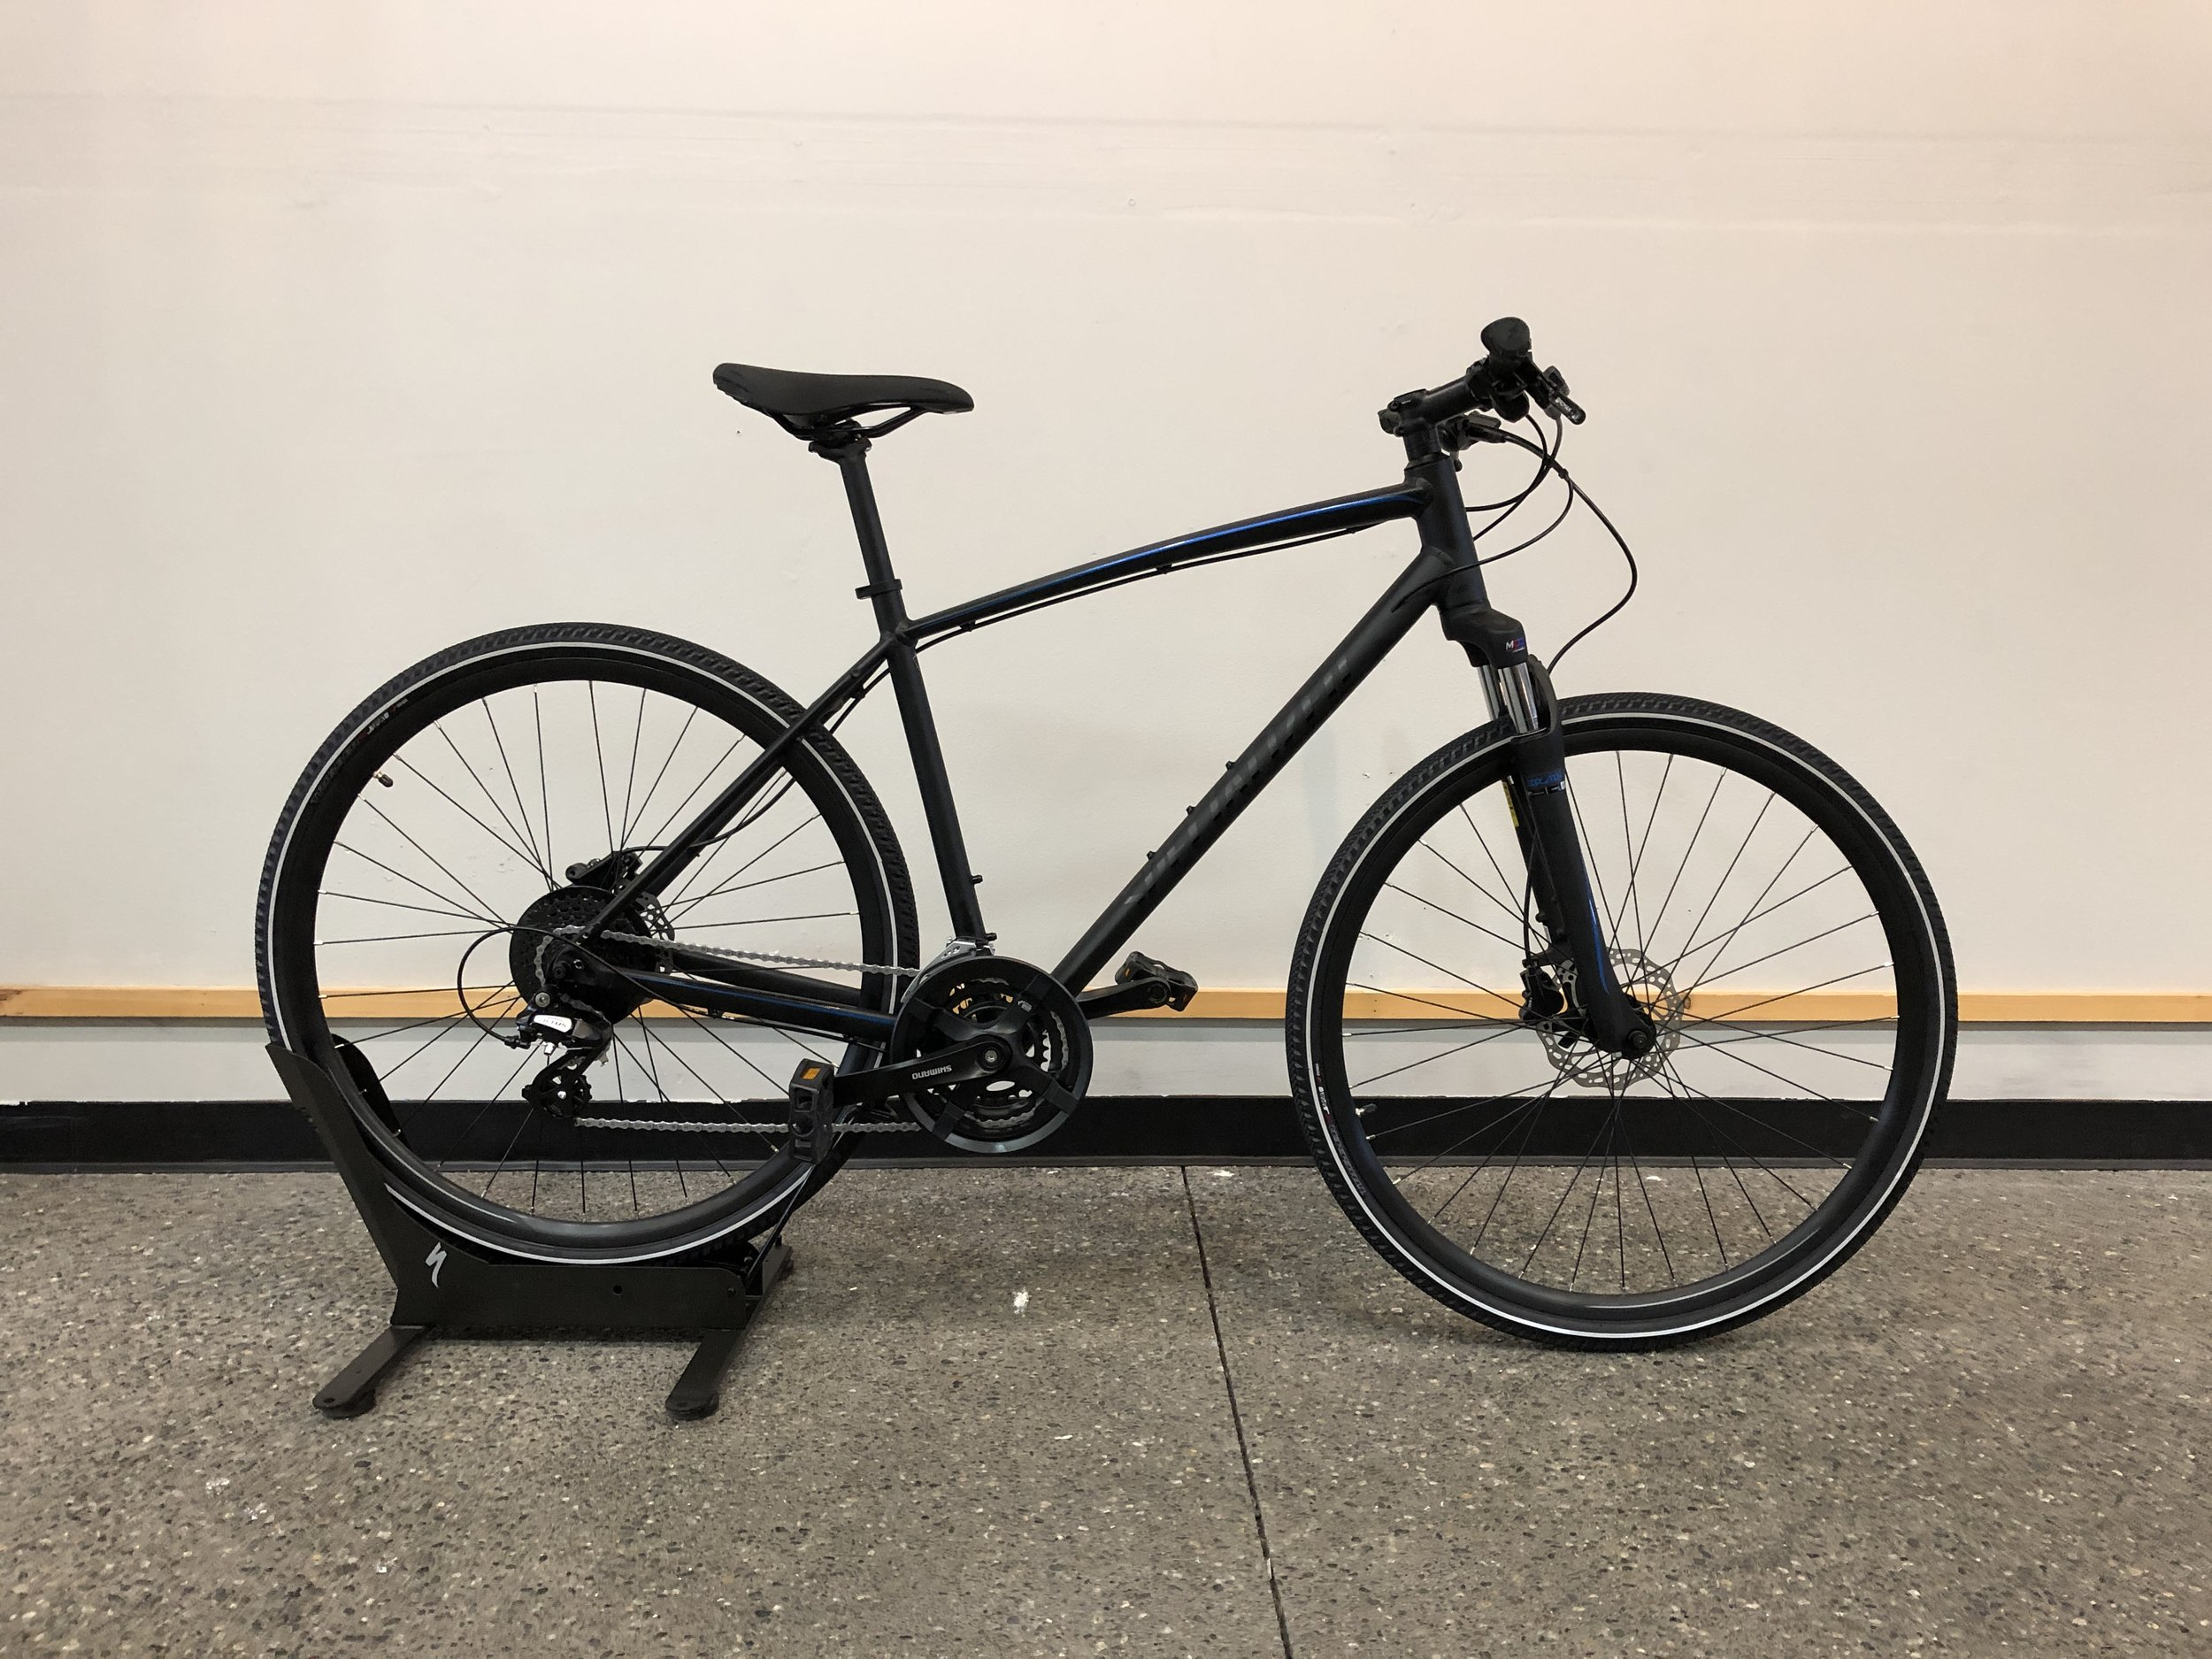 2019 Specialized Crosstrail Hydraulic Disc $670 - Sizes Available : Small, Medium,  Large